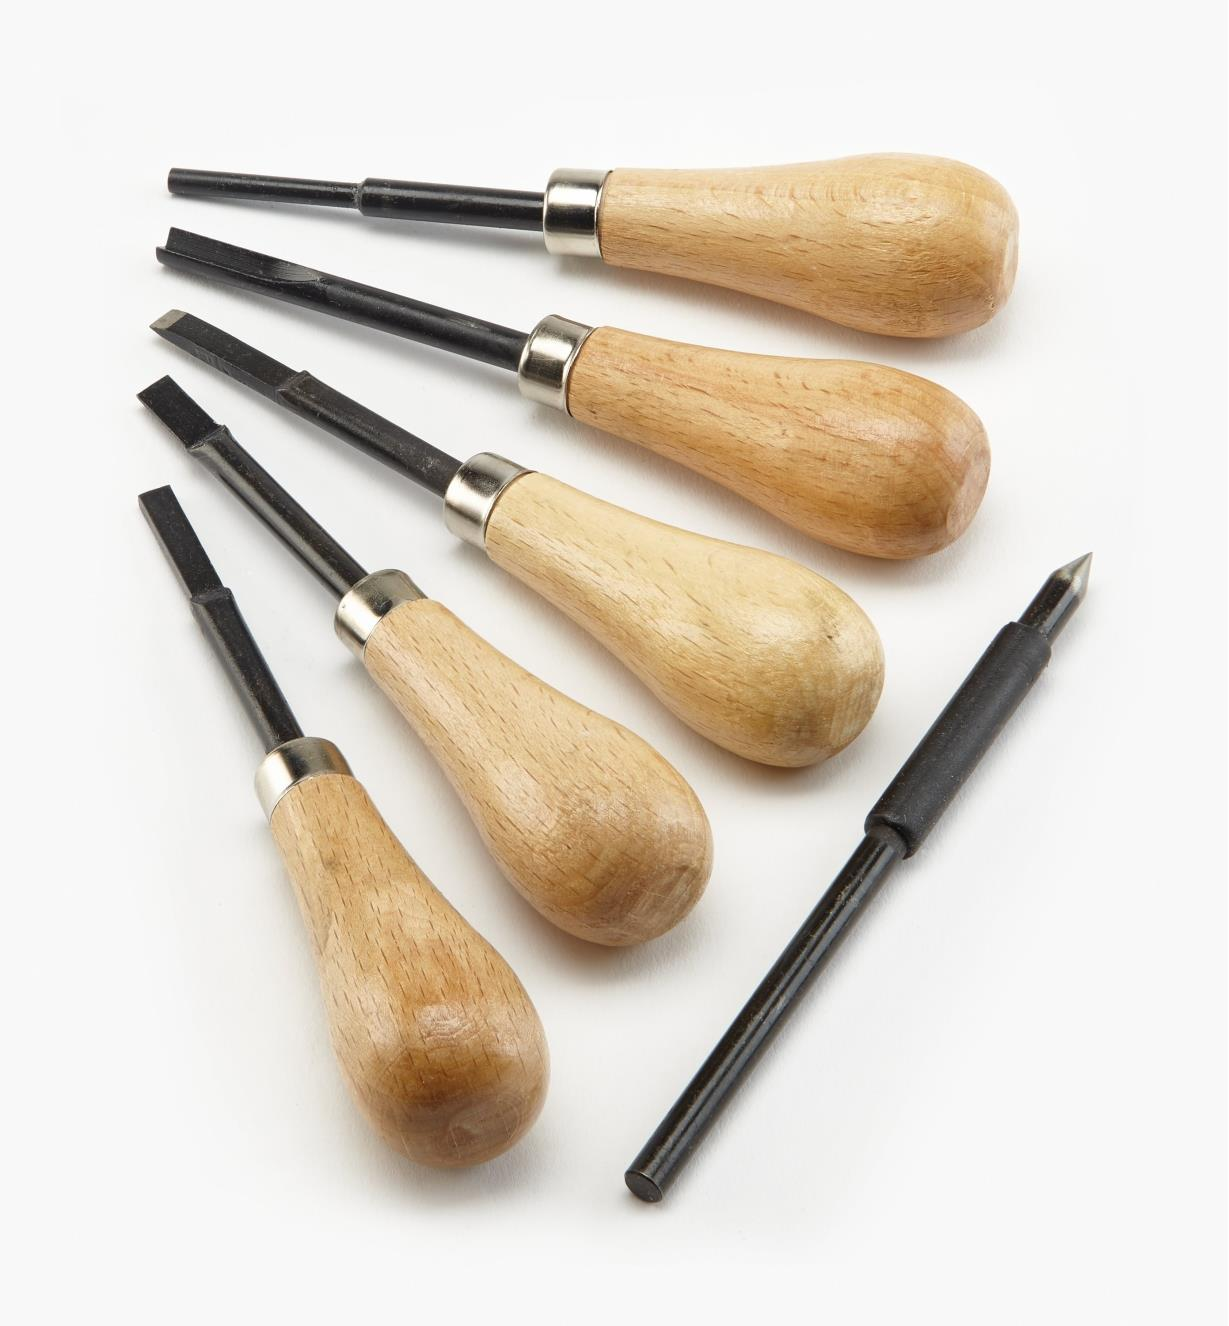 09A0589 - Adult's Slate Engraving Tool Set